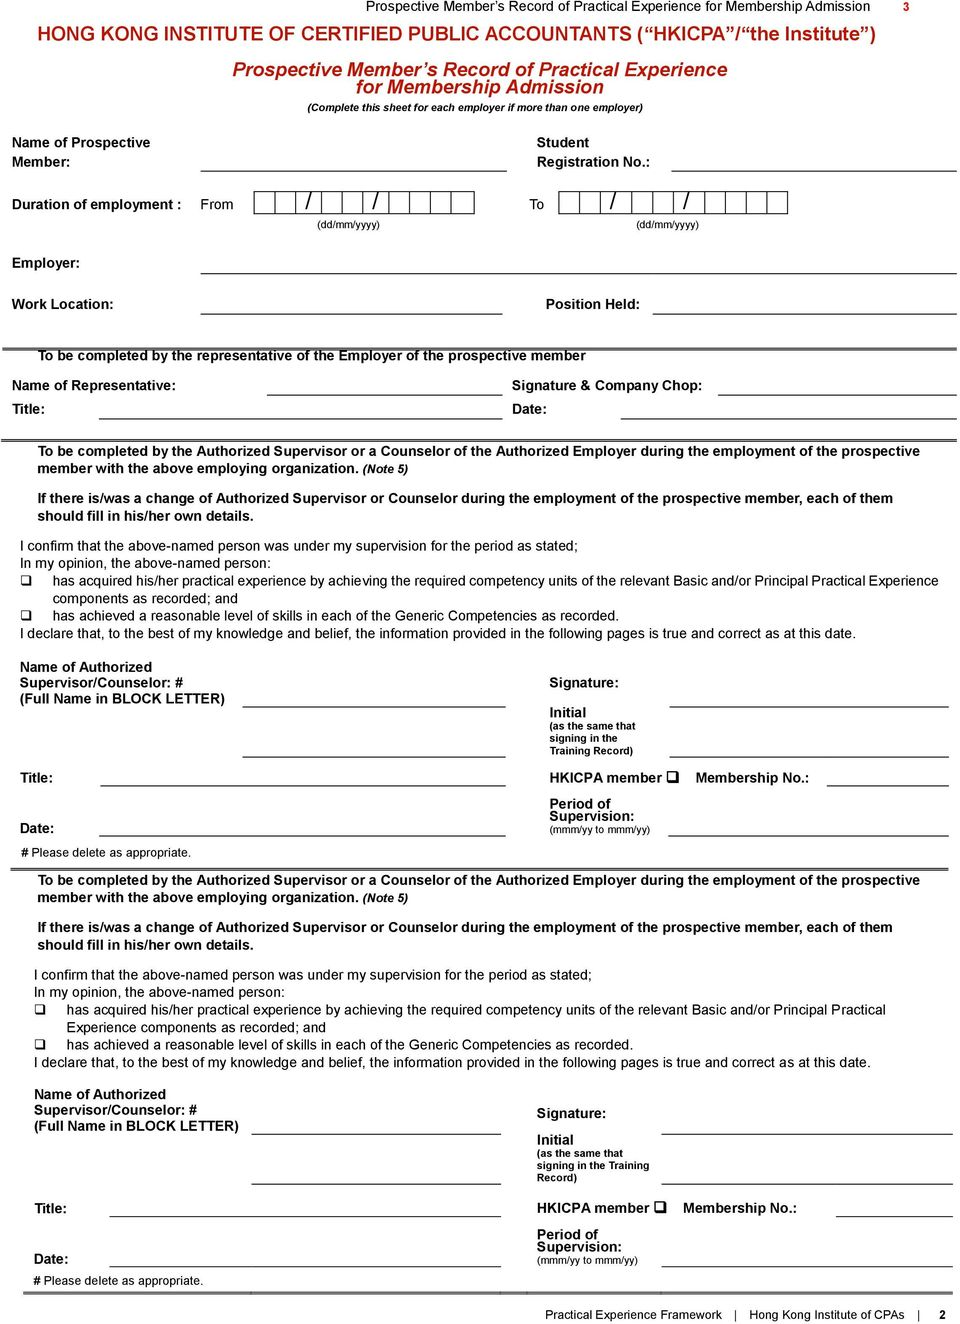 : Duration employment : From / / To / / (dd/mm/yyyy) (dd/mm/yyyy) Employer: Work Location: Position Held: To be completed by the representative the Employer the prospective member Name